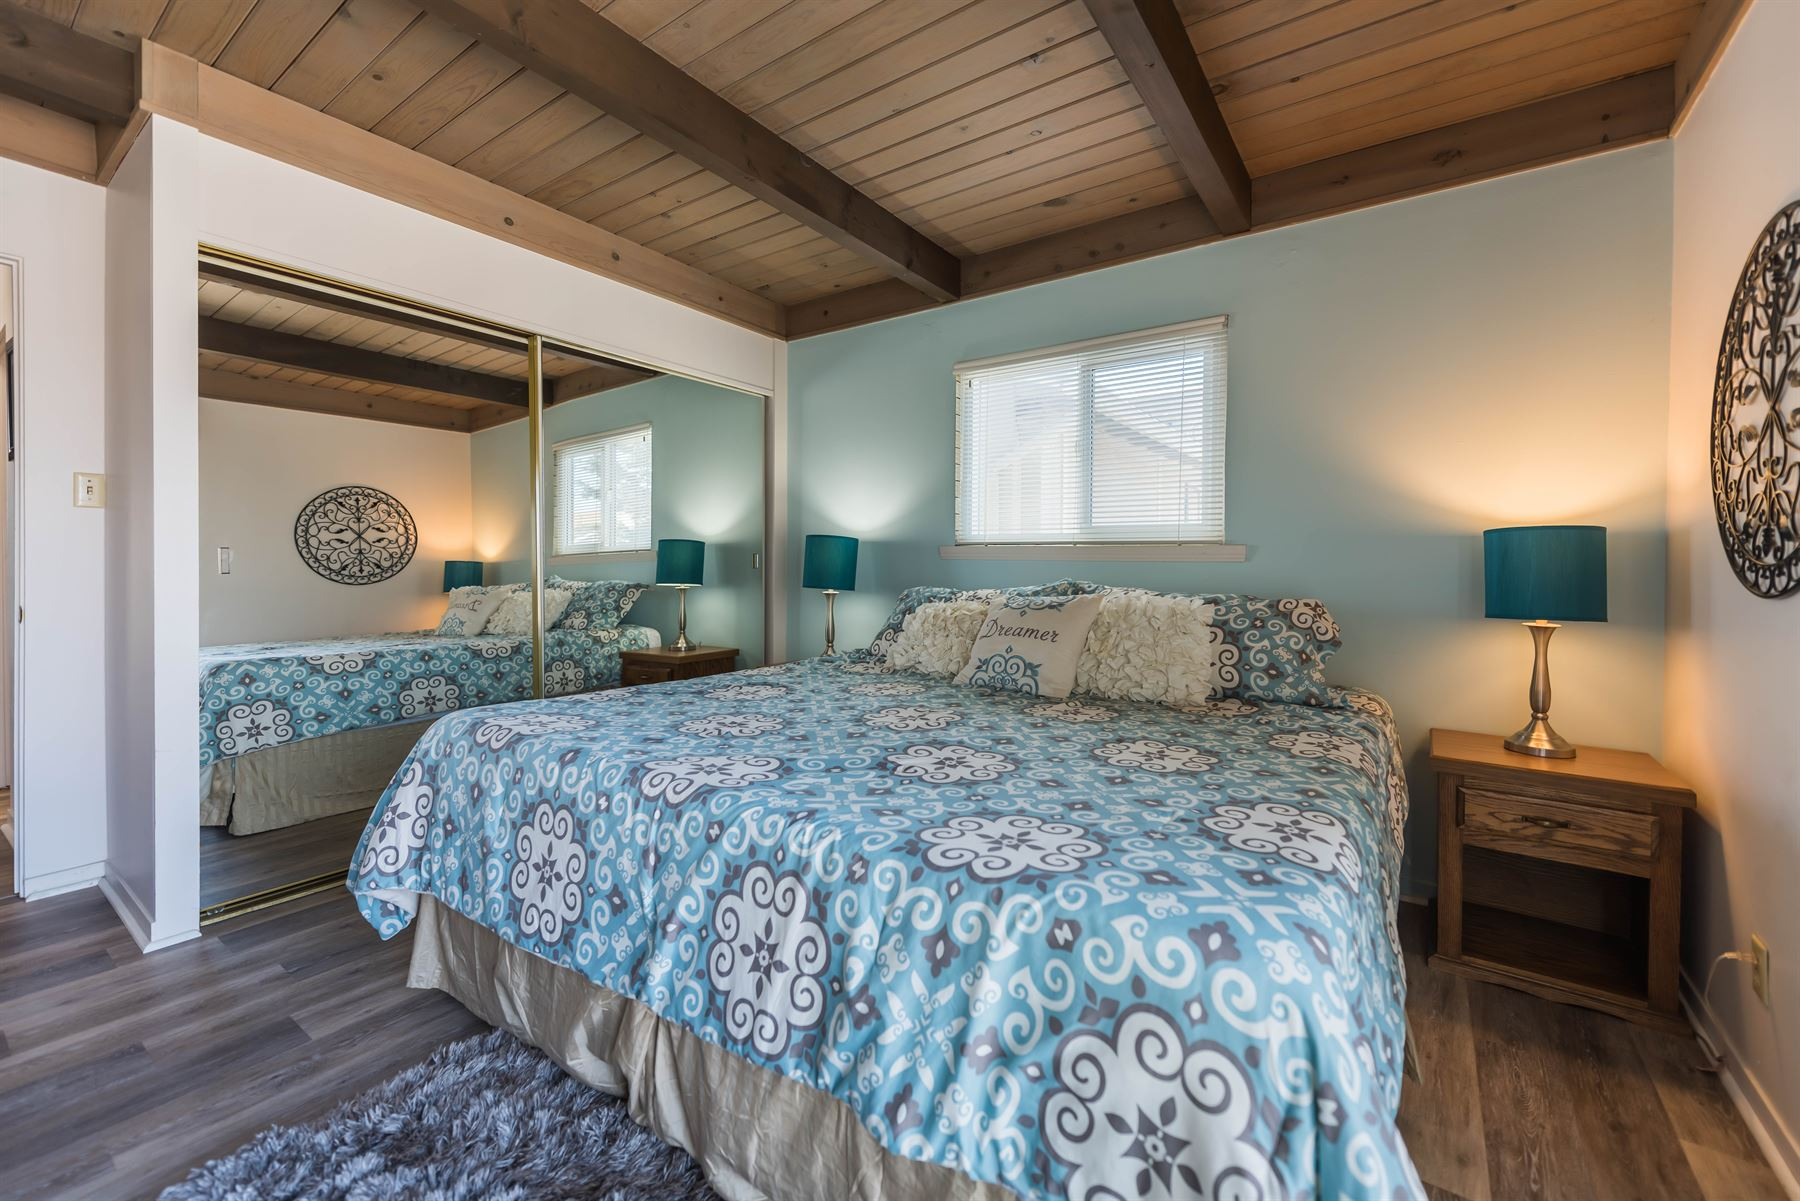 Oceanview Hideaway - Interior - Bedroom with queen bed and sliding mirrored doors to a closet